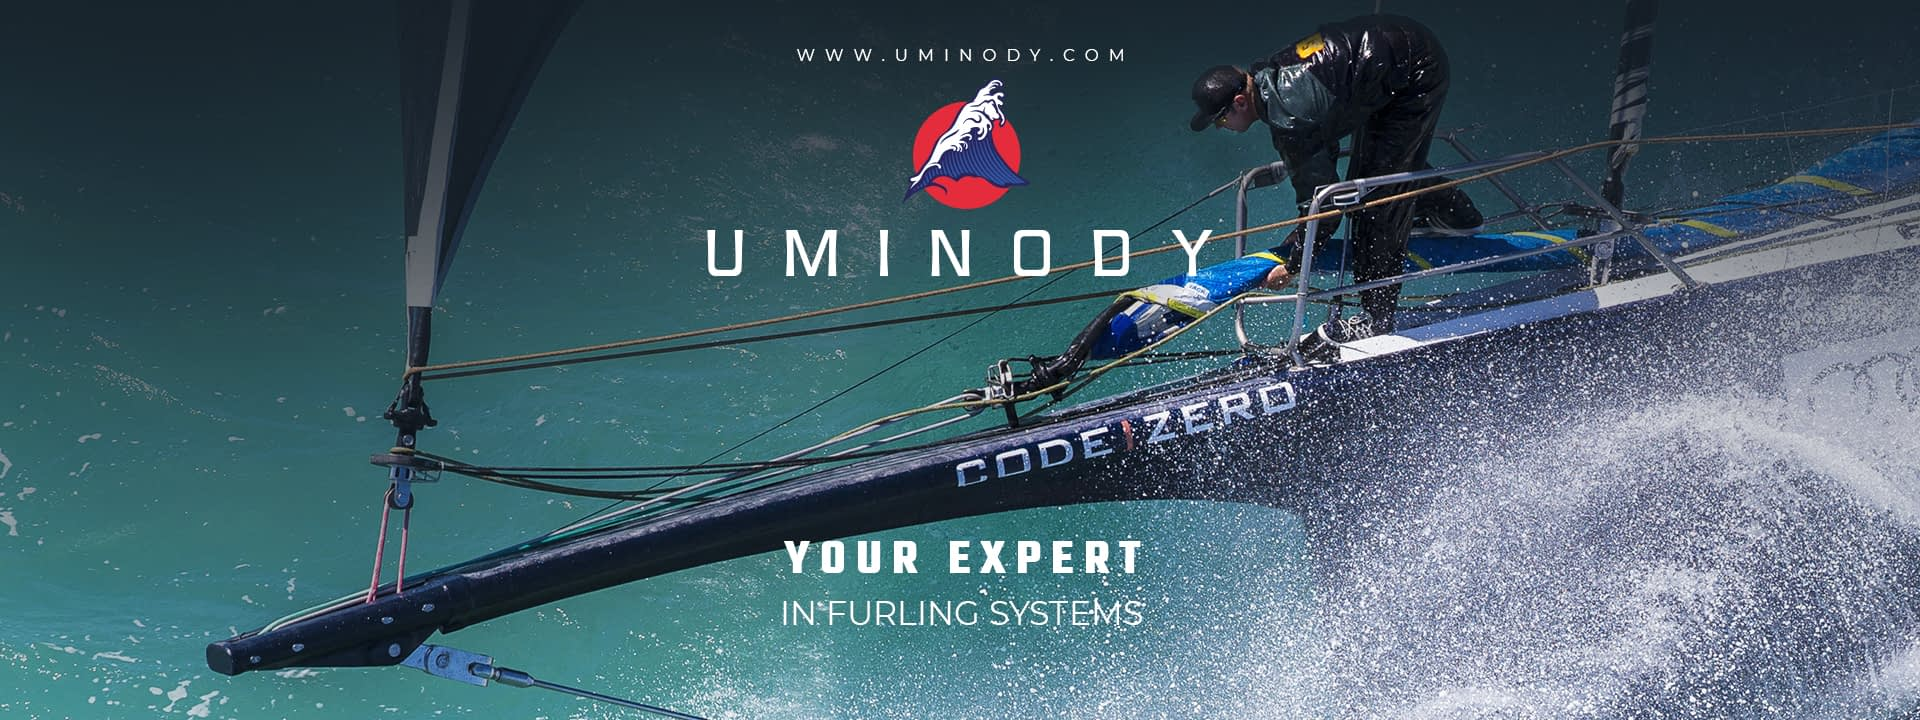 Uminody - Your Expert in Furling Systems